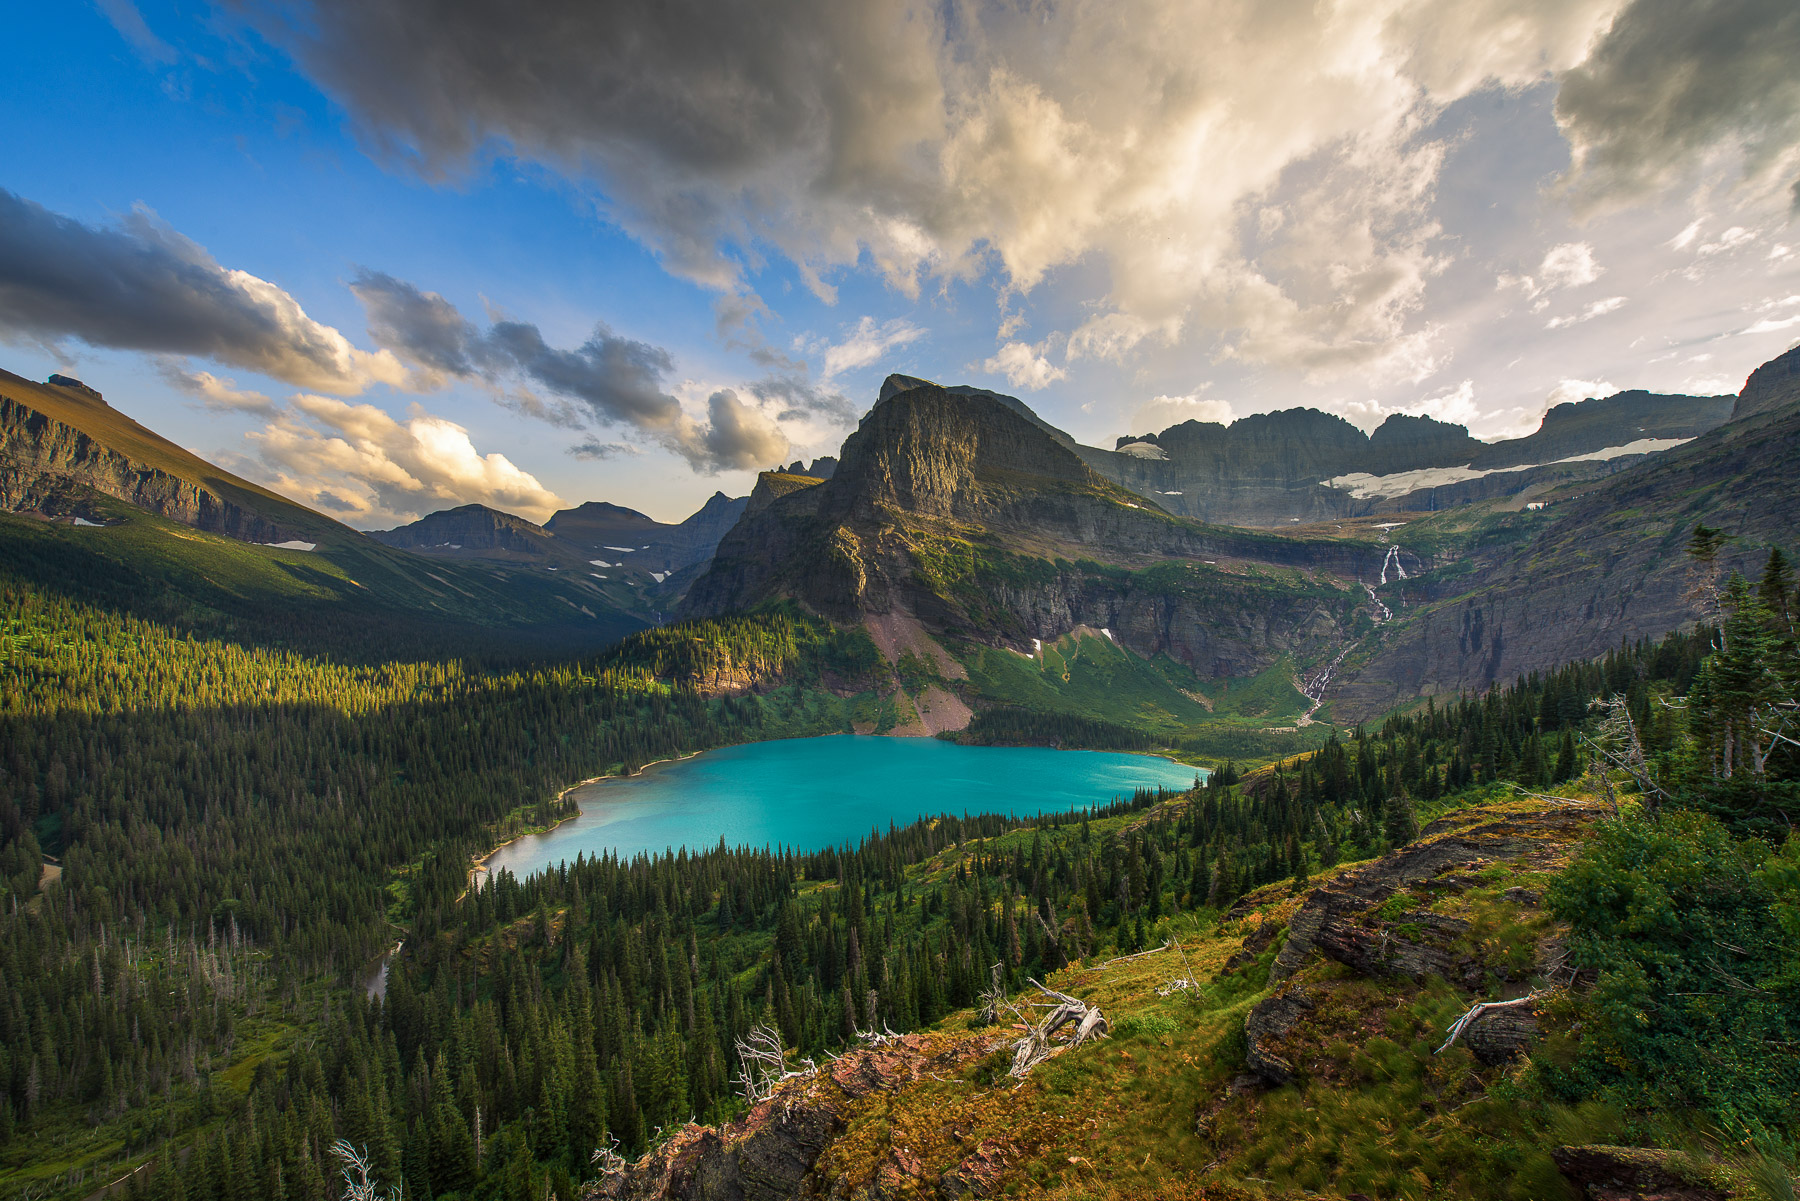 One of the most epic mountain vistas I've hiked to is along the Grinell Glacier Trail in Glacier National Park. I captured this...